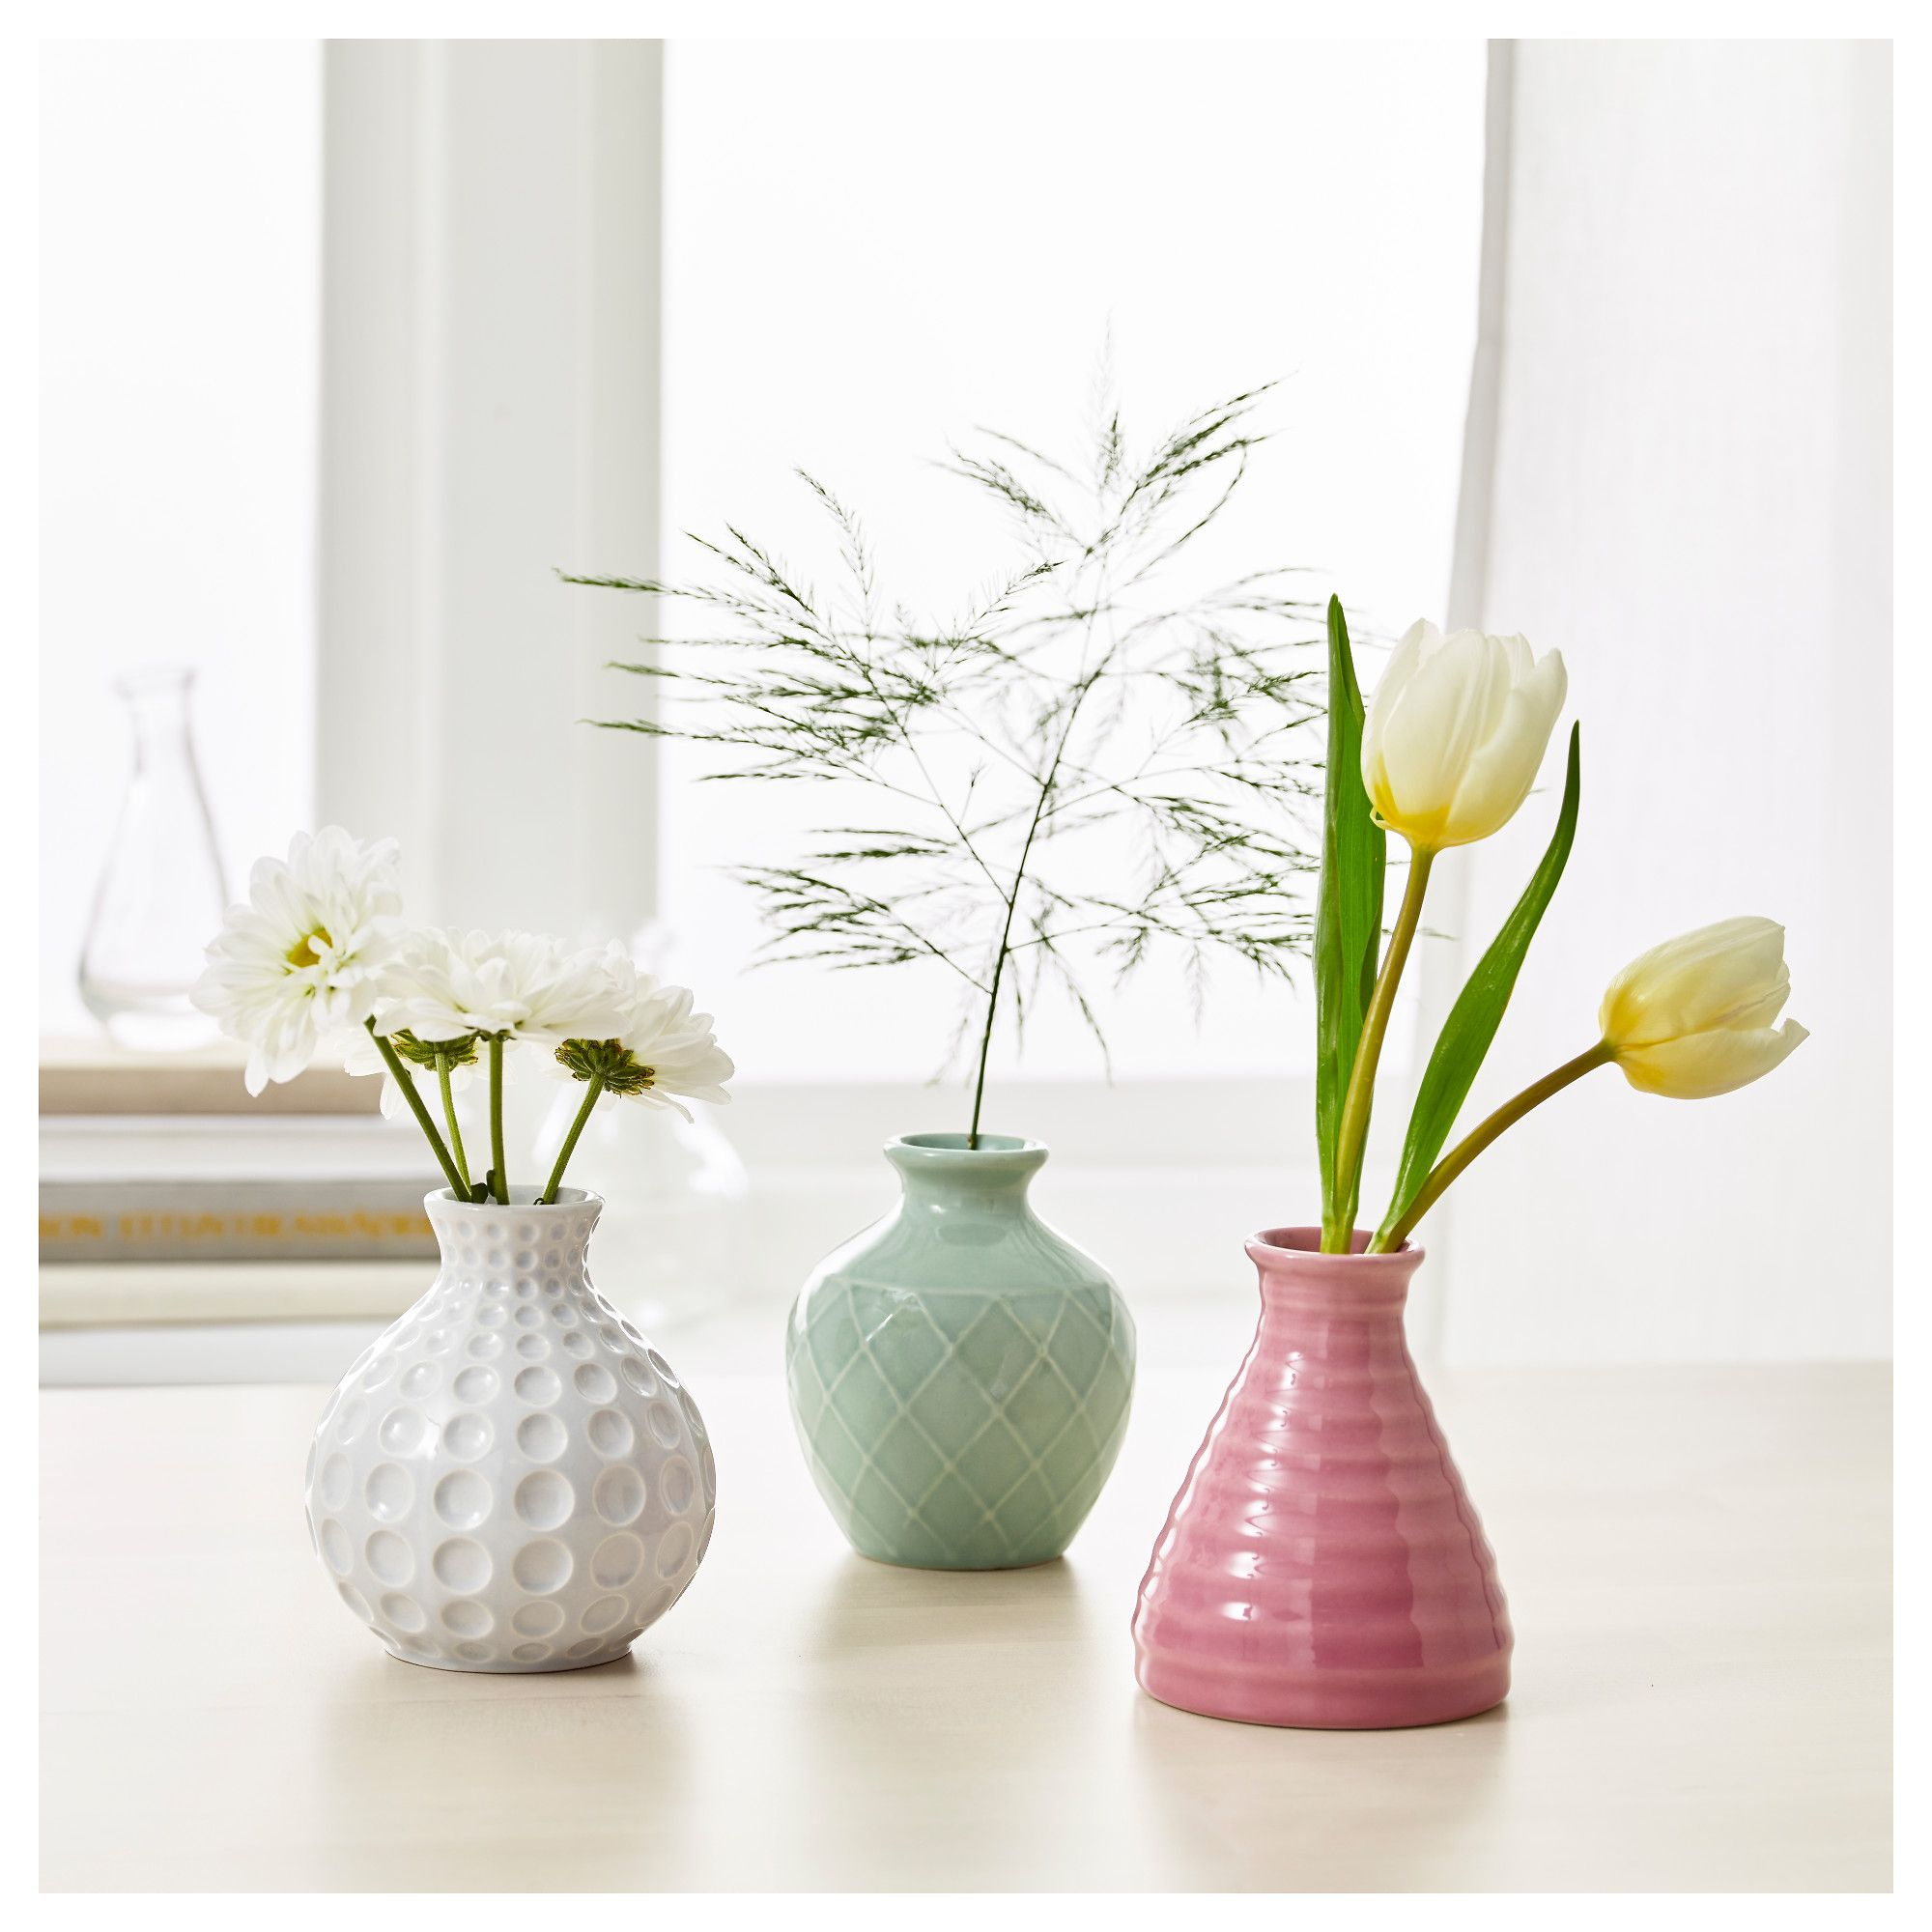 Ikea sommar 2017 vase set of 3 ideas for h florals ikea sommar vase set of the unique shape makes the vases beautiful with and without flowers floridaeventfo Image collections